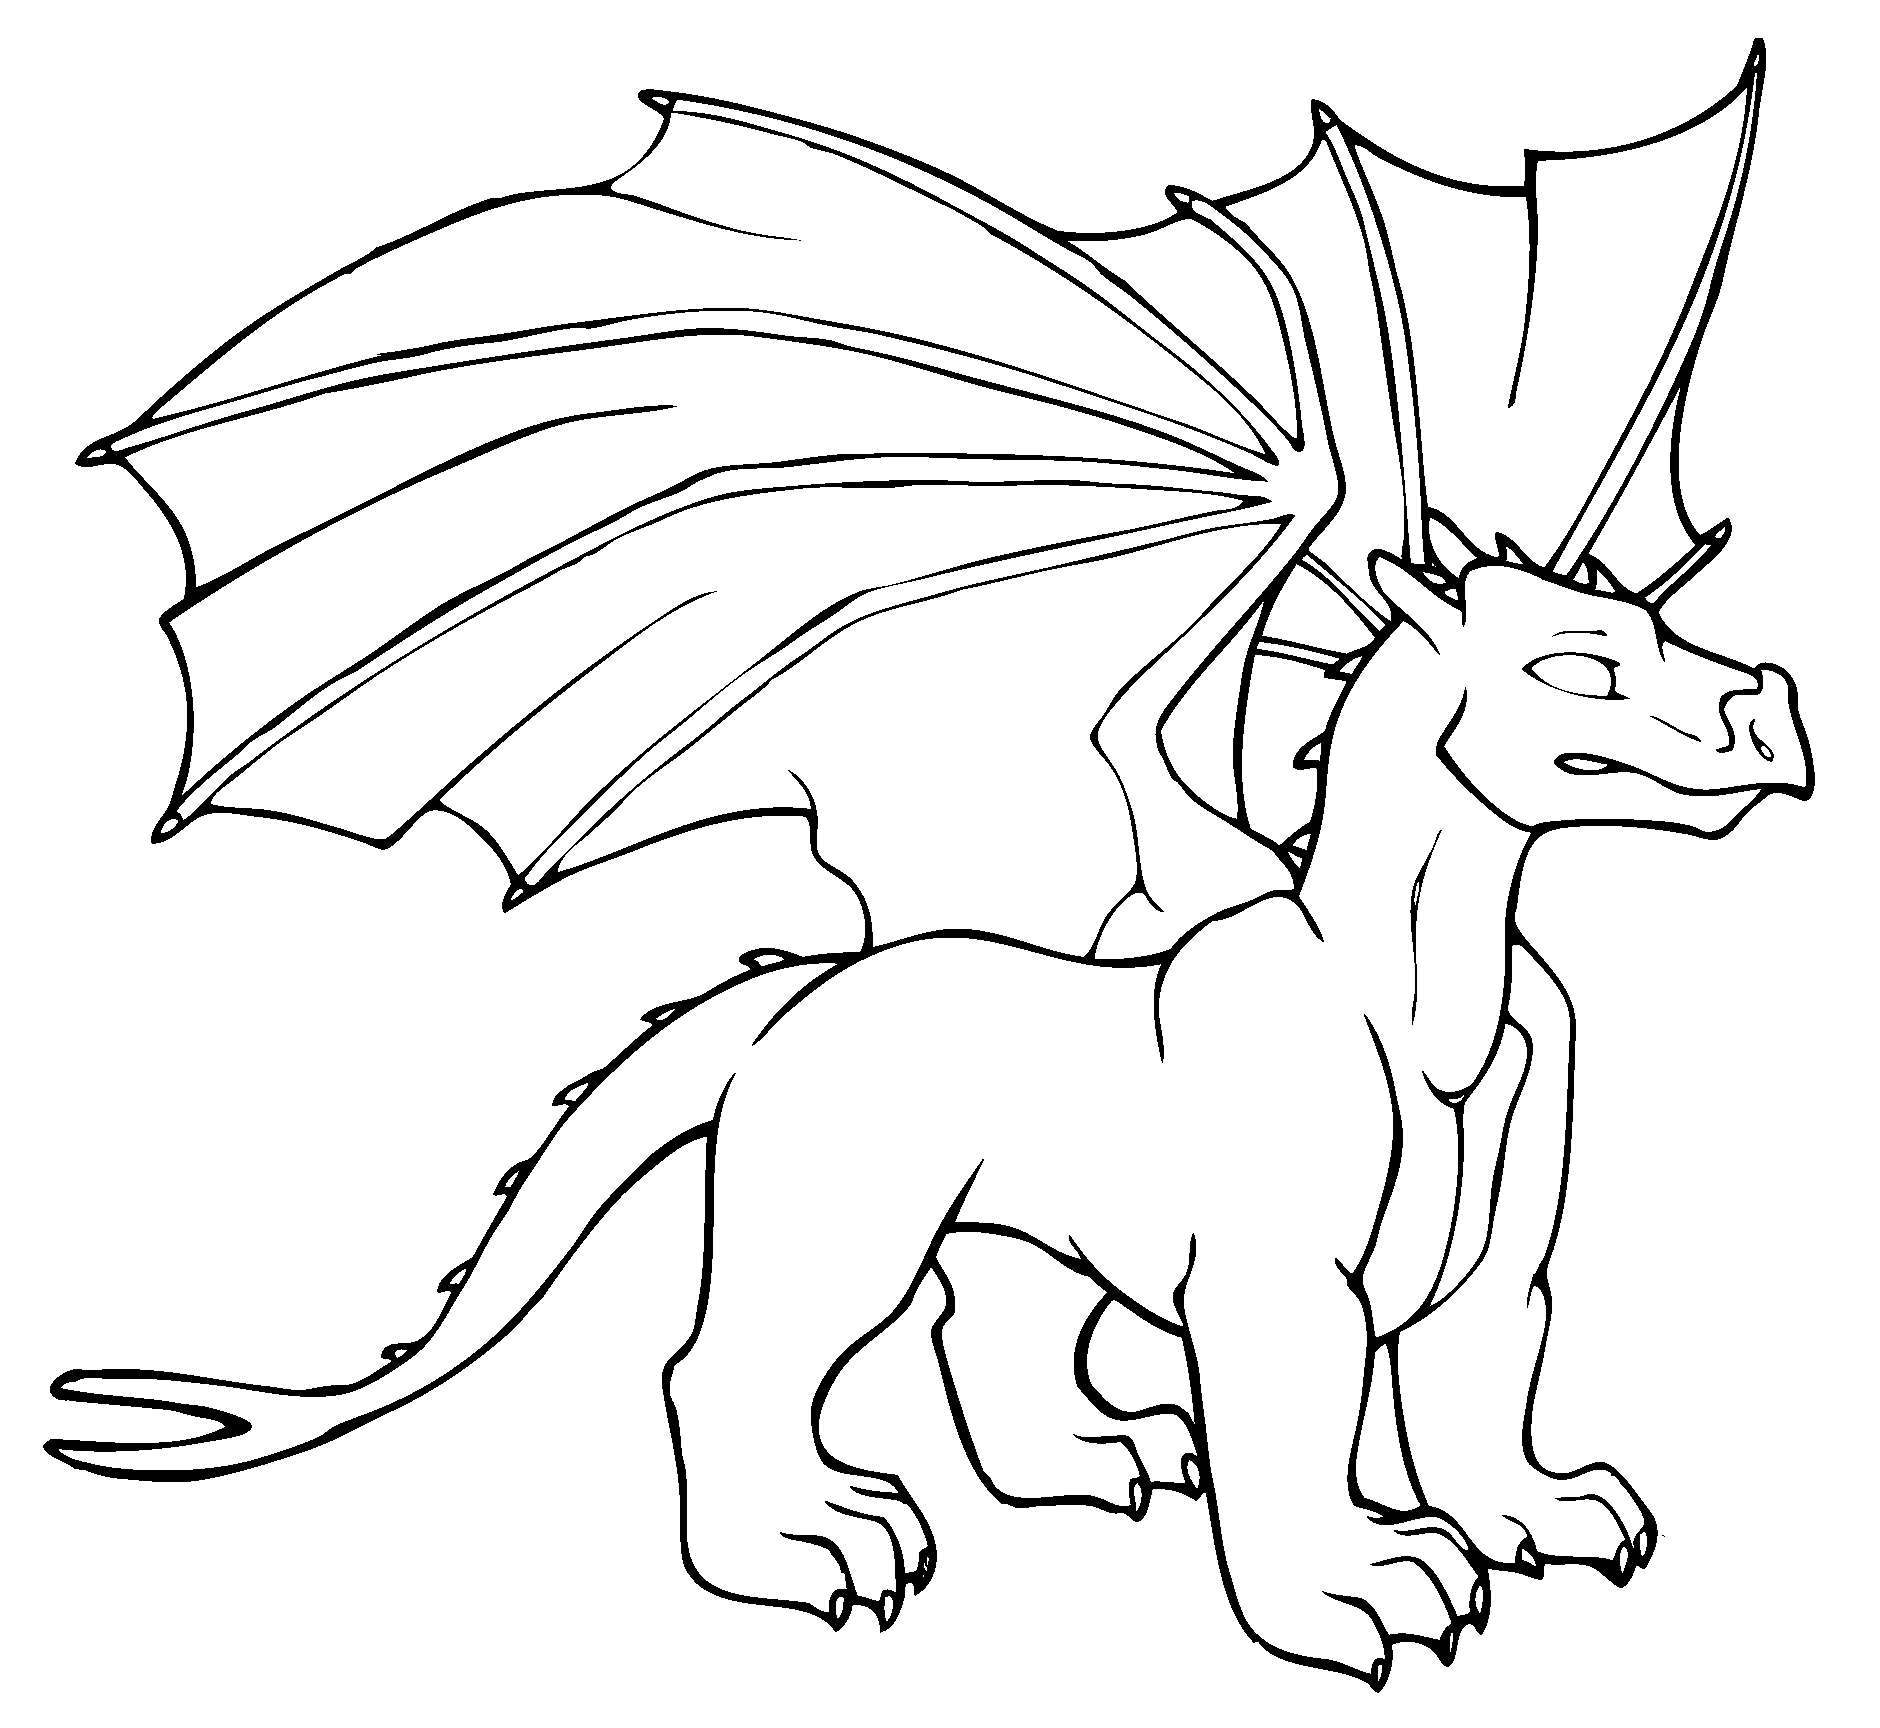 dragon coloring pages free chinese dragon coloring pages to download and print for free pages coloring free dragon